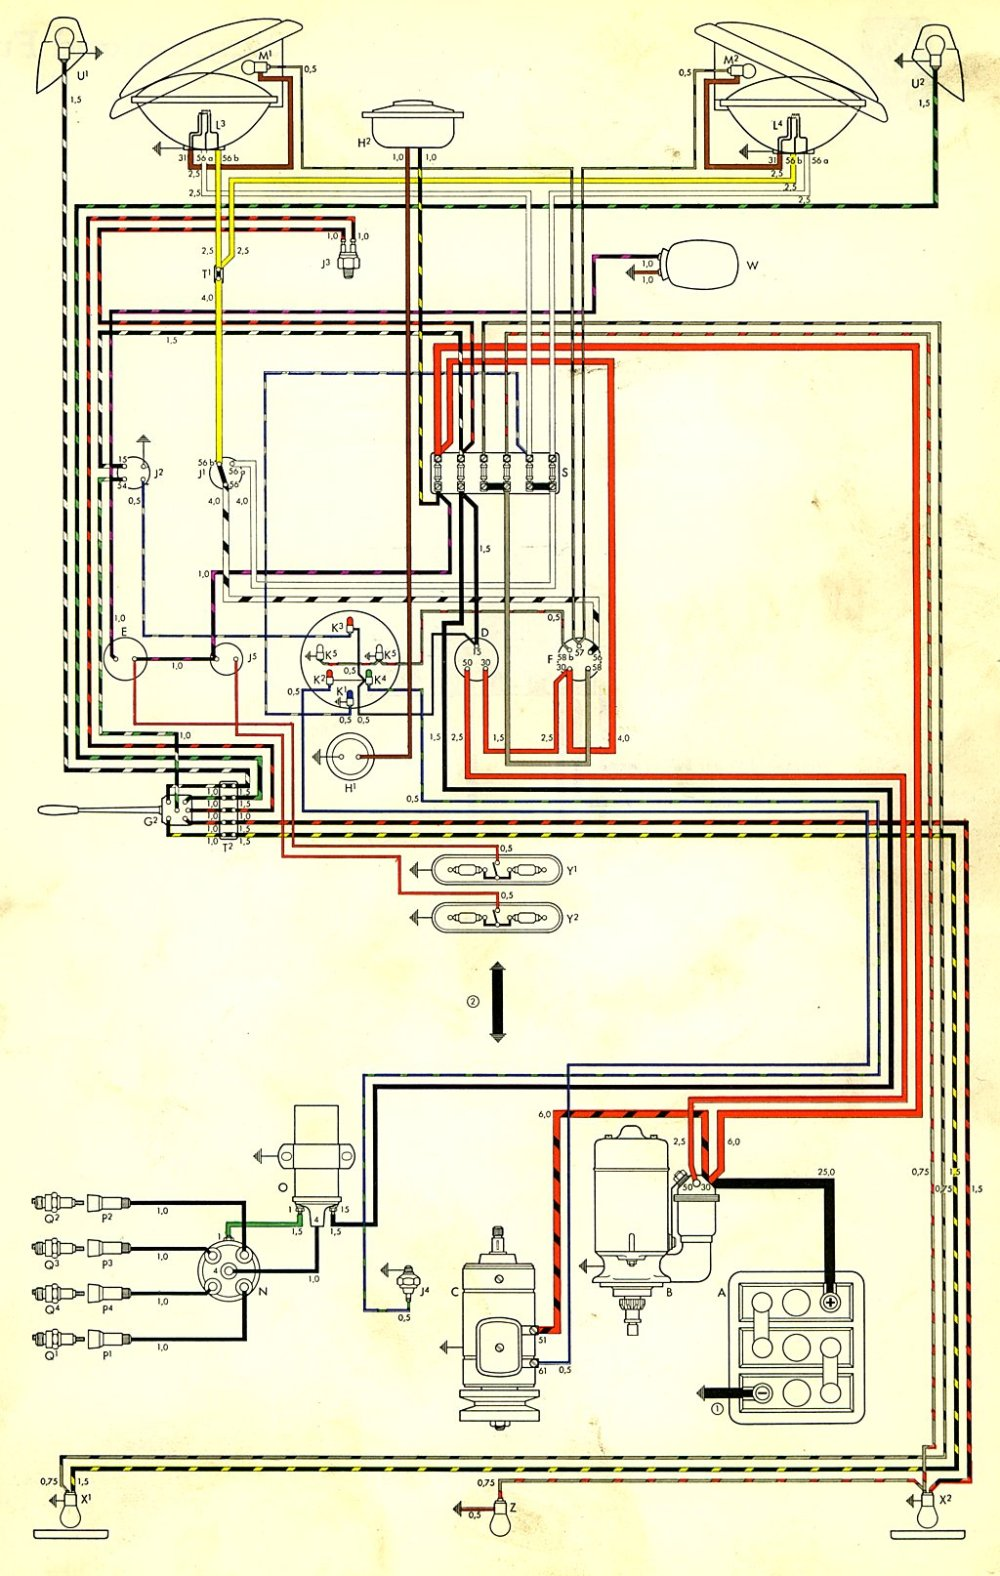 medium resolution of thesamba com type 2 wiring diagrams 1984 vw vanagon wiring diagram vw vanagon fuse diagram